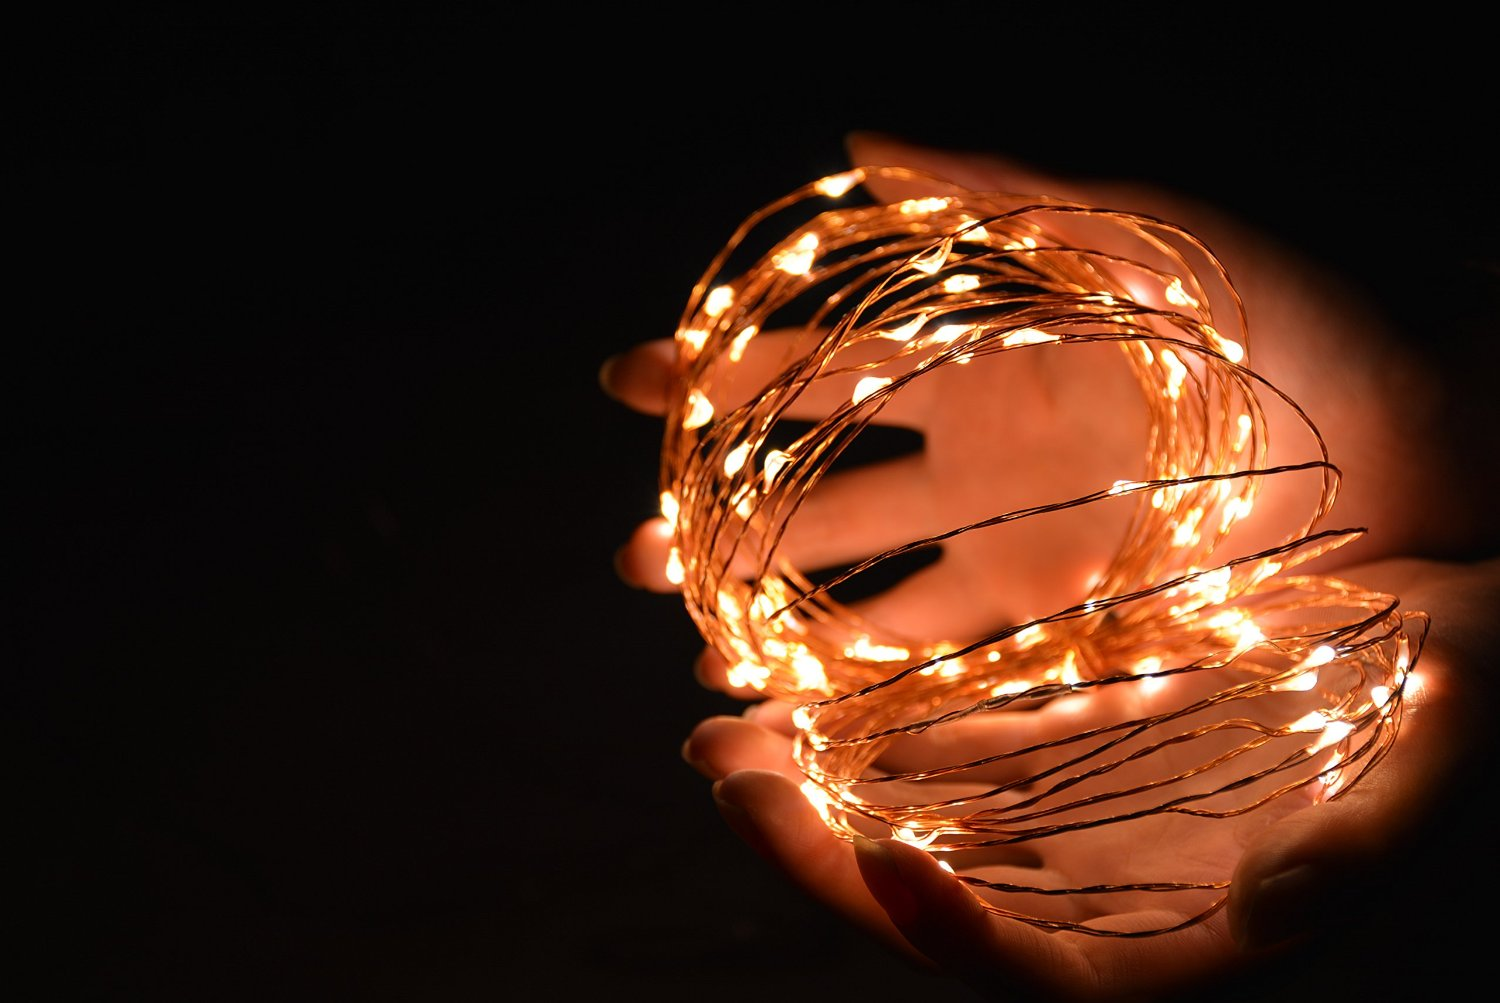 Copper String Lights Down To The Woods : Products-33ft led copper wire string lights-HAHOME